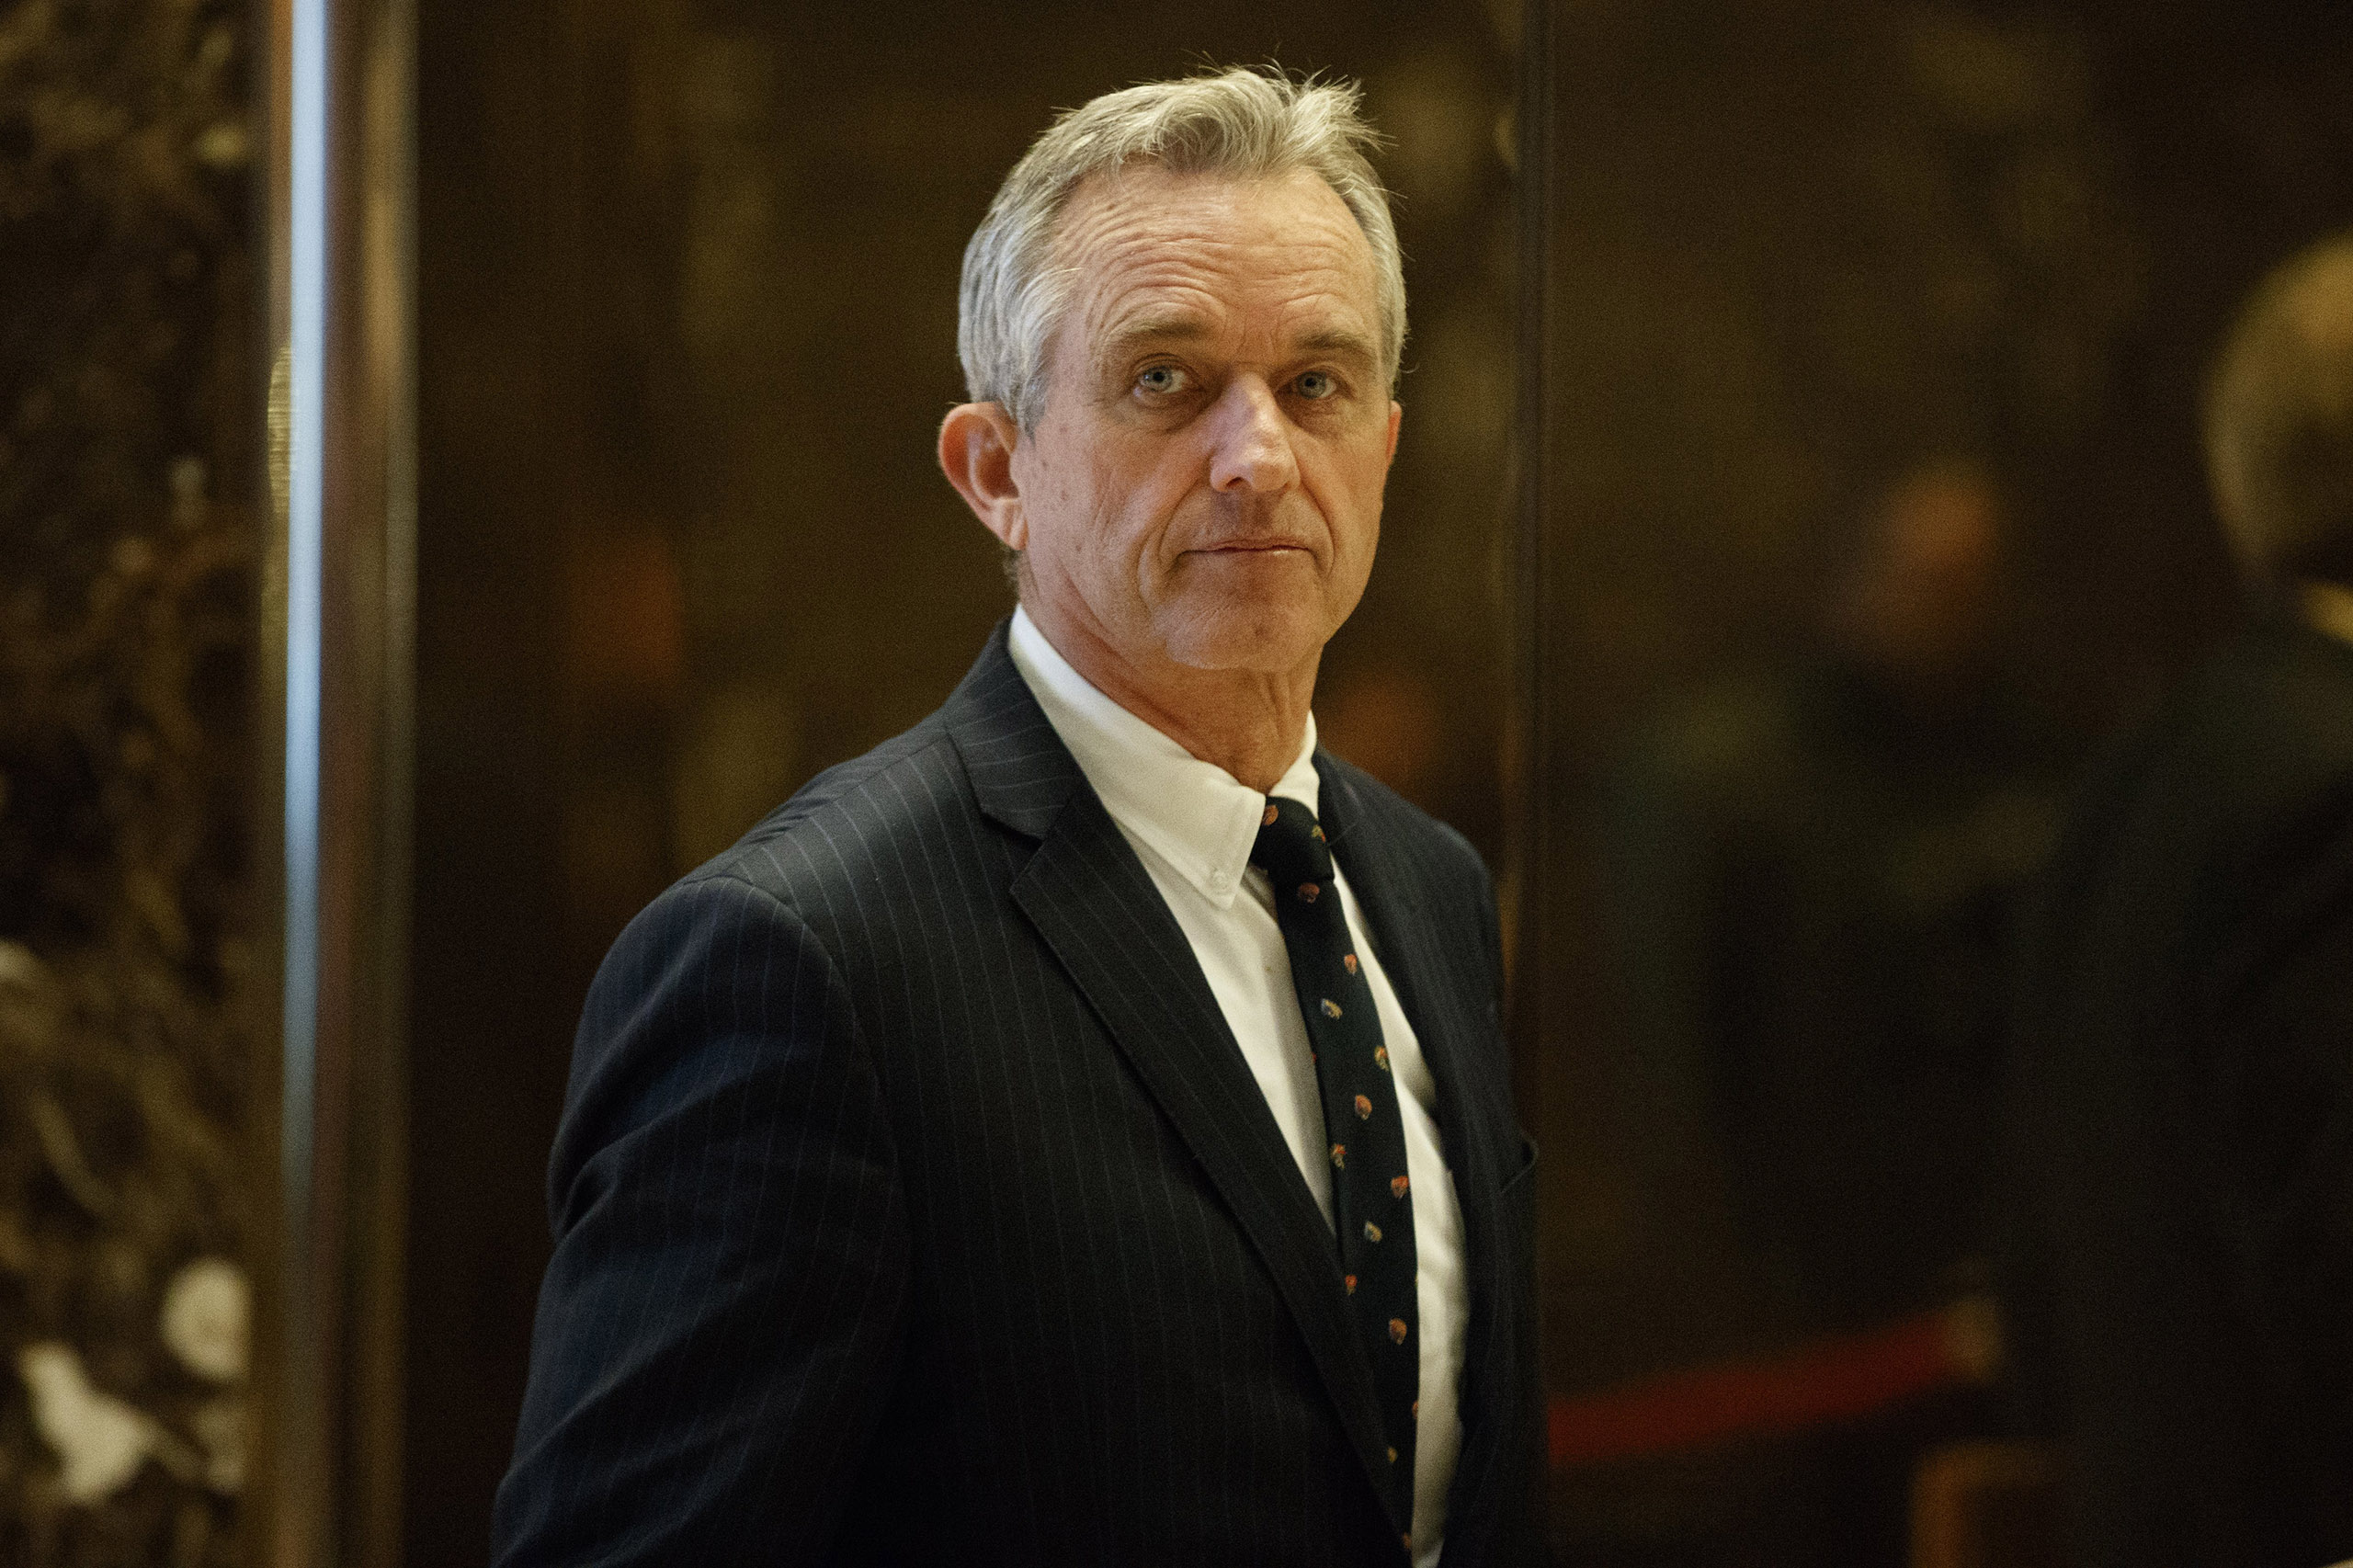 Robert F. Kennedy Jr. arrives in the lobby of Trump Tower for a meeting with President-elect Donald Trump, in New York, on Jan. 10, 2017.